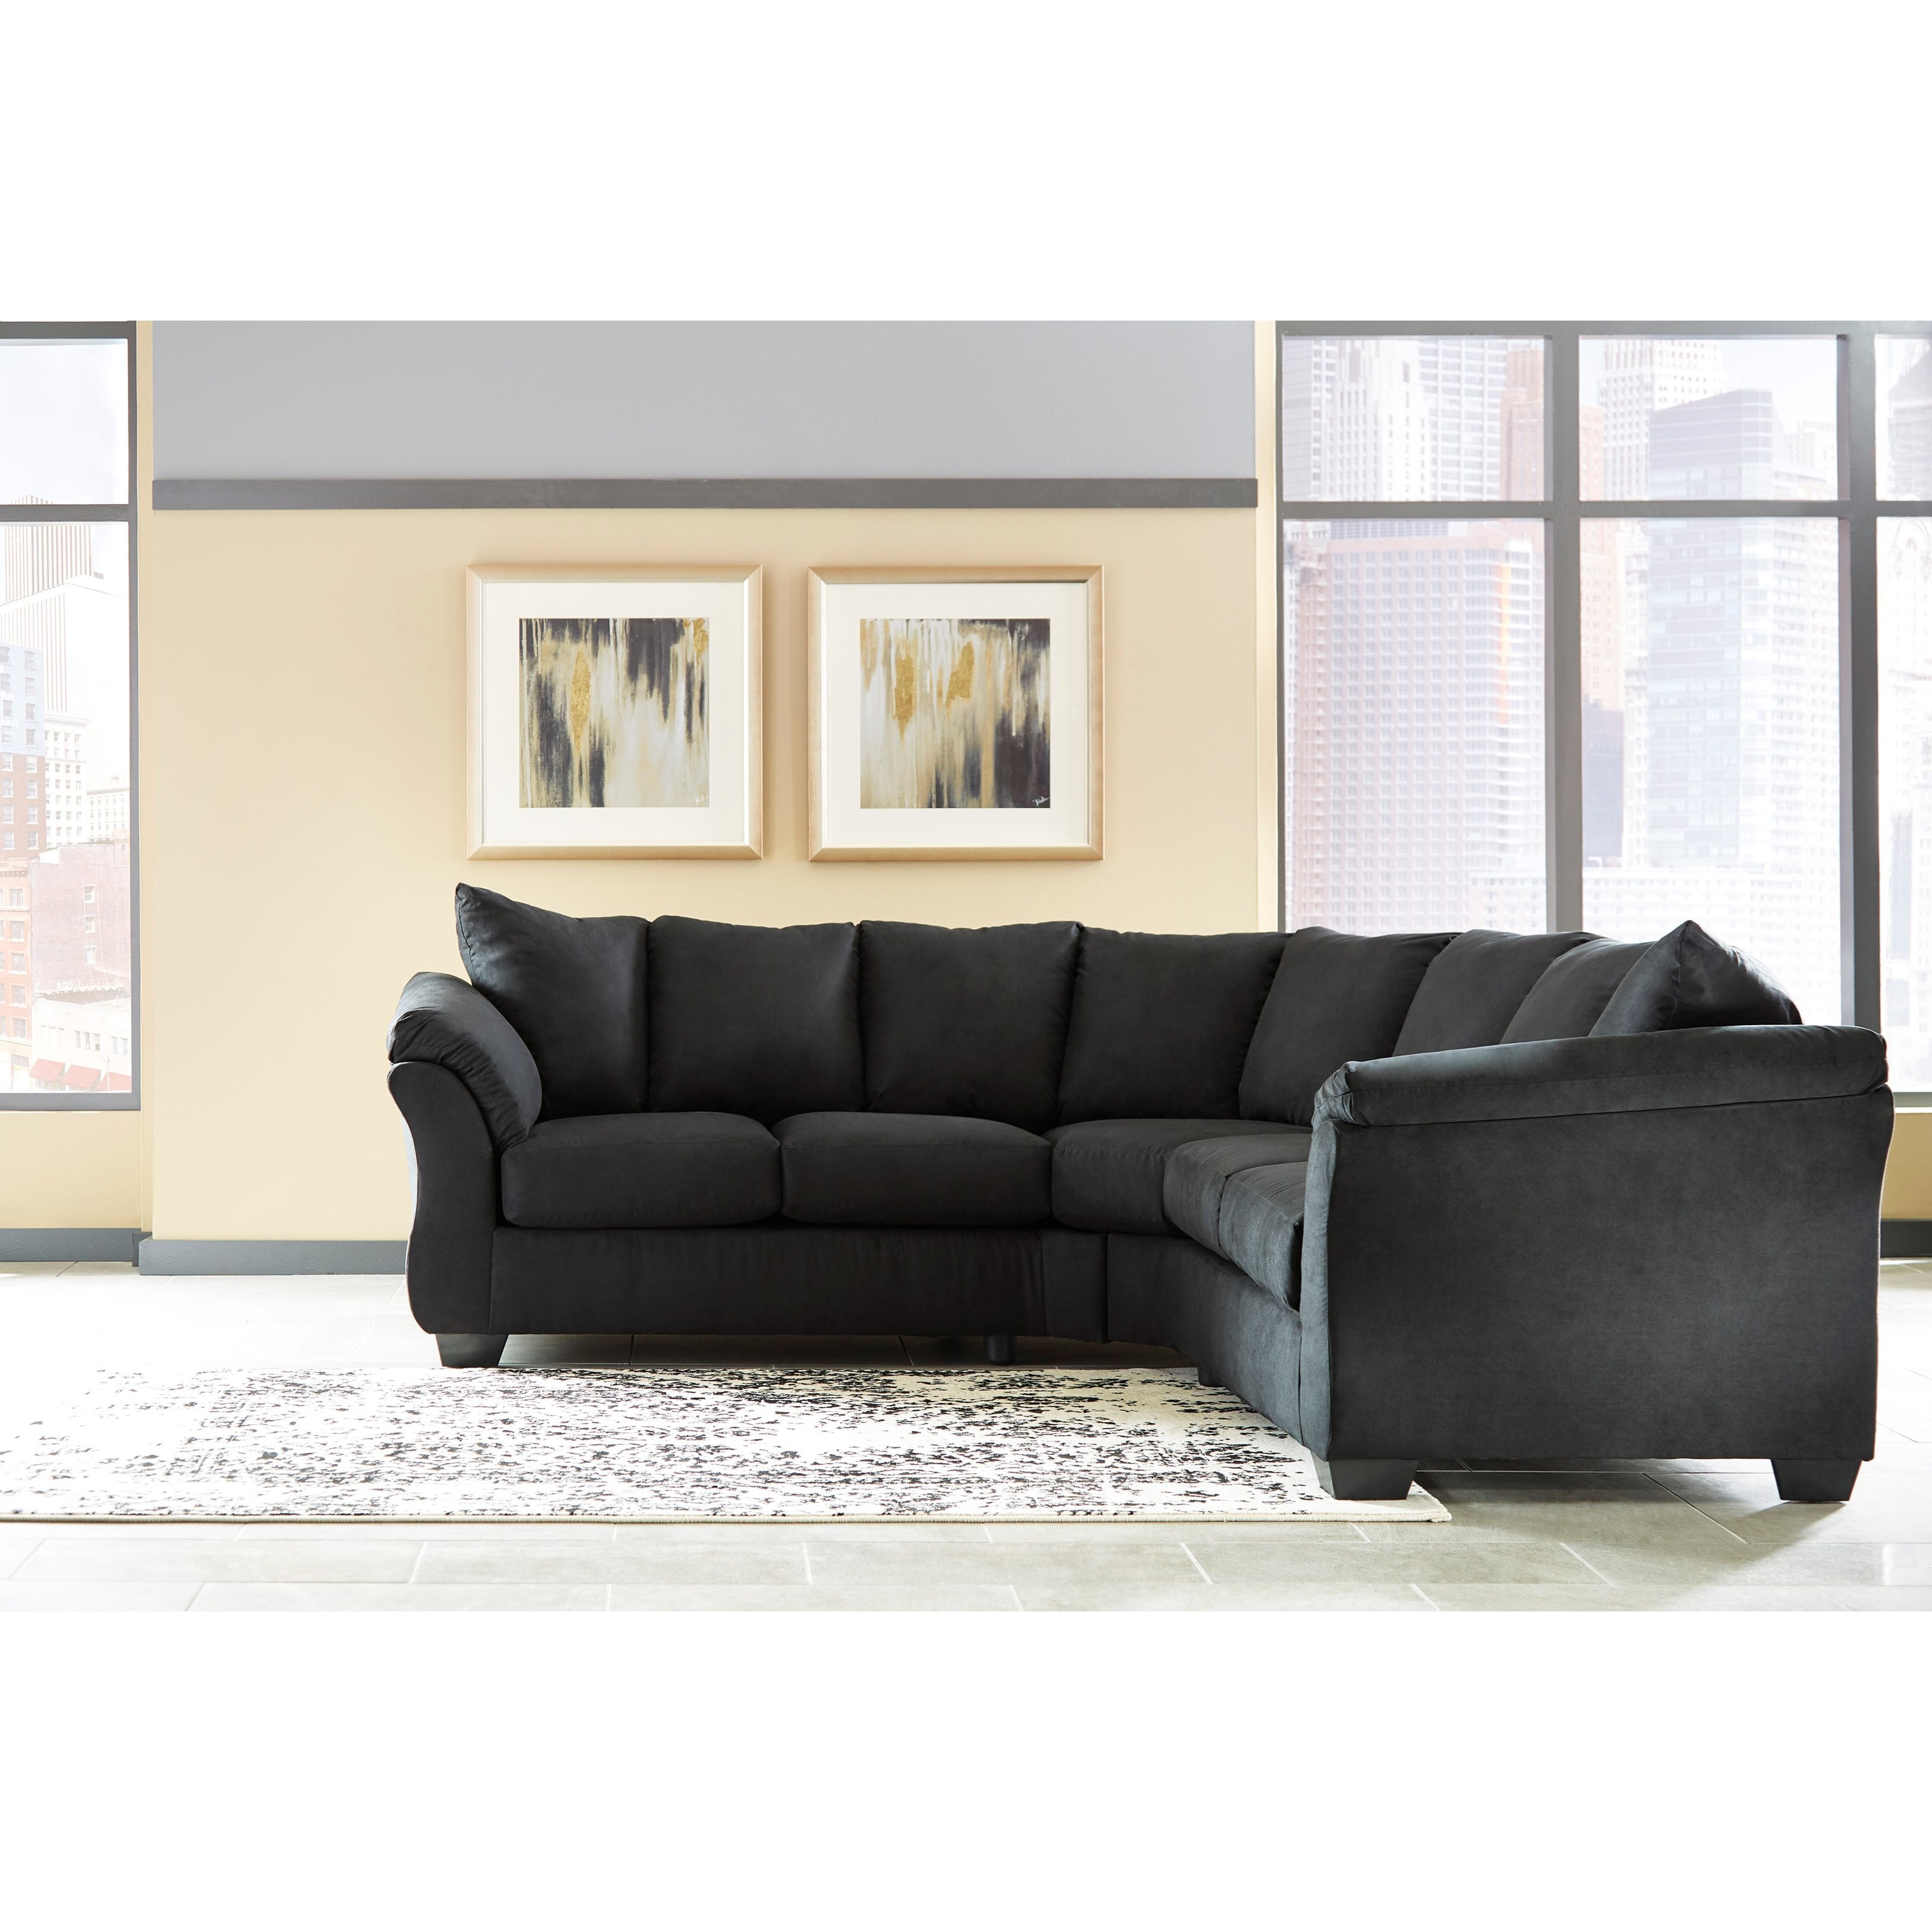 Signature Design By Ashley Darcy Black Contemporary Sectional Sofa With Sweeping Pillow Arms